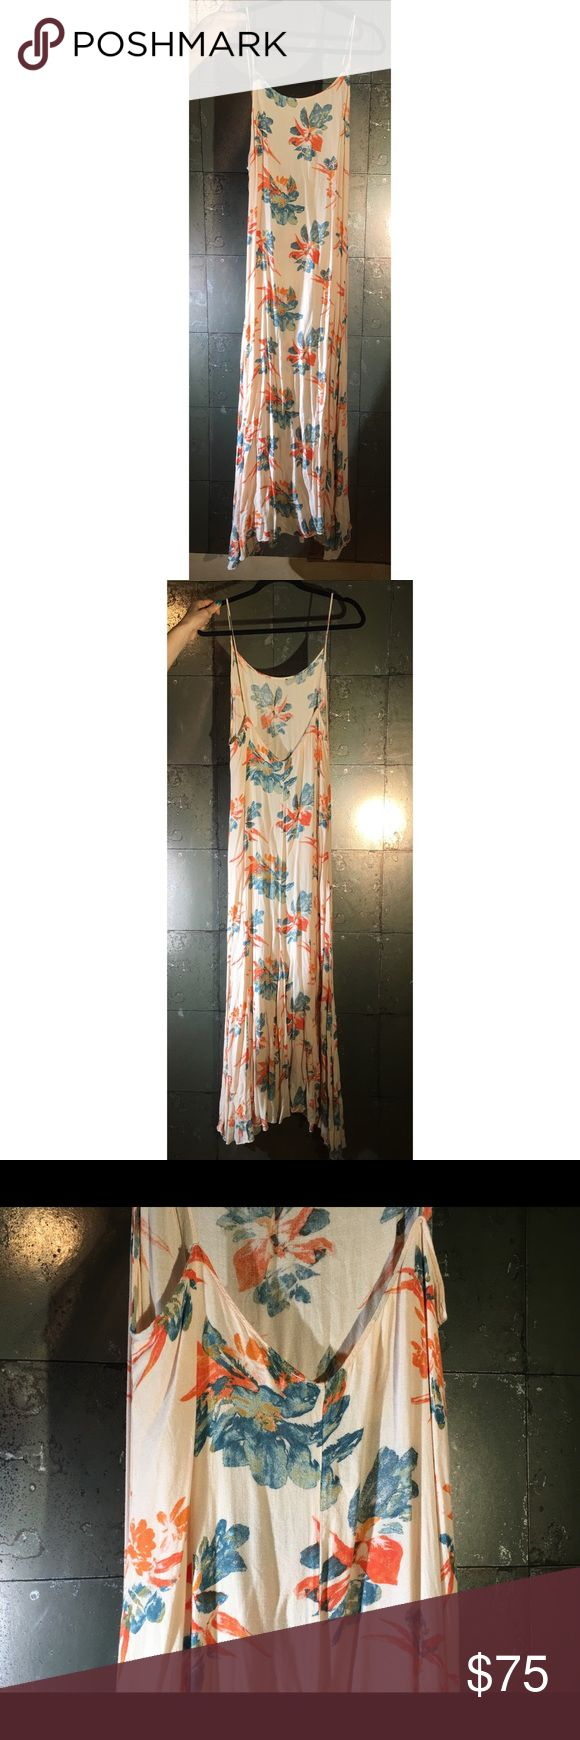 Free People Maxi Dress - Wear Out or To Bed! Free People Intimates • M • Pale Coral + Blue + Red-Orange • Worn once on a TV set. Hangs well on the body - pair with a leather jacket and tall boots or 70s shoes. Or wear to bed! Perfect vacay piece cause you can wear to sleep for half the trip, then rock it out for the rest. Free People Dresses Maxi